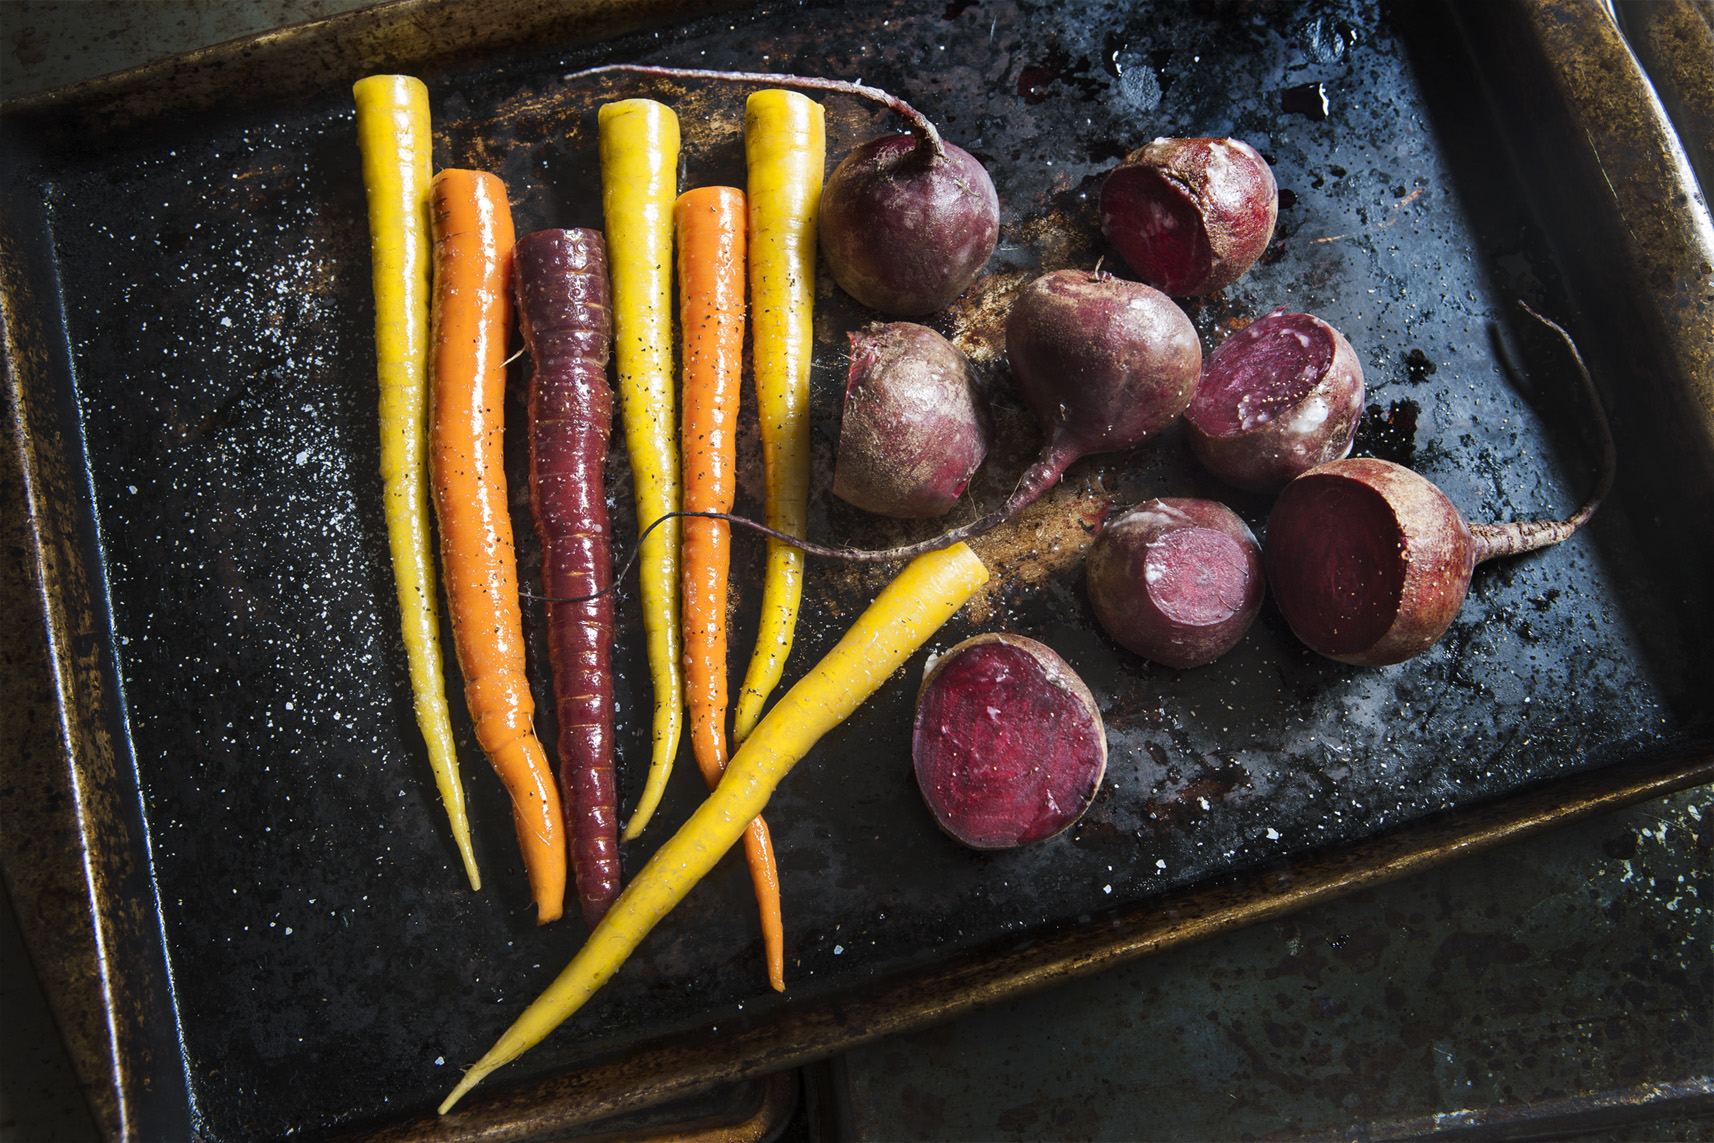 ZC8X5489 Beets and carrots_APF